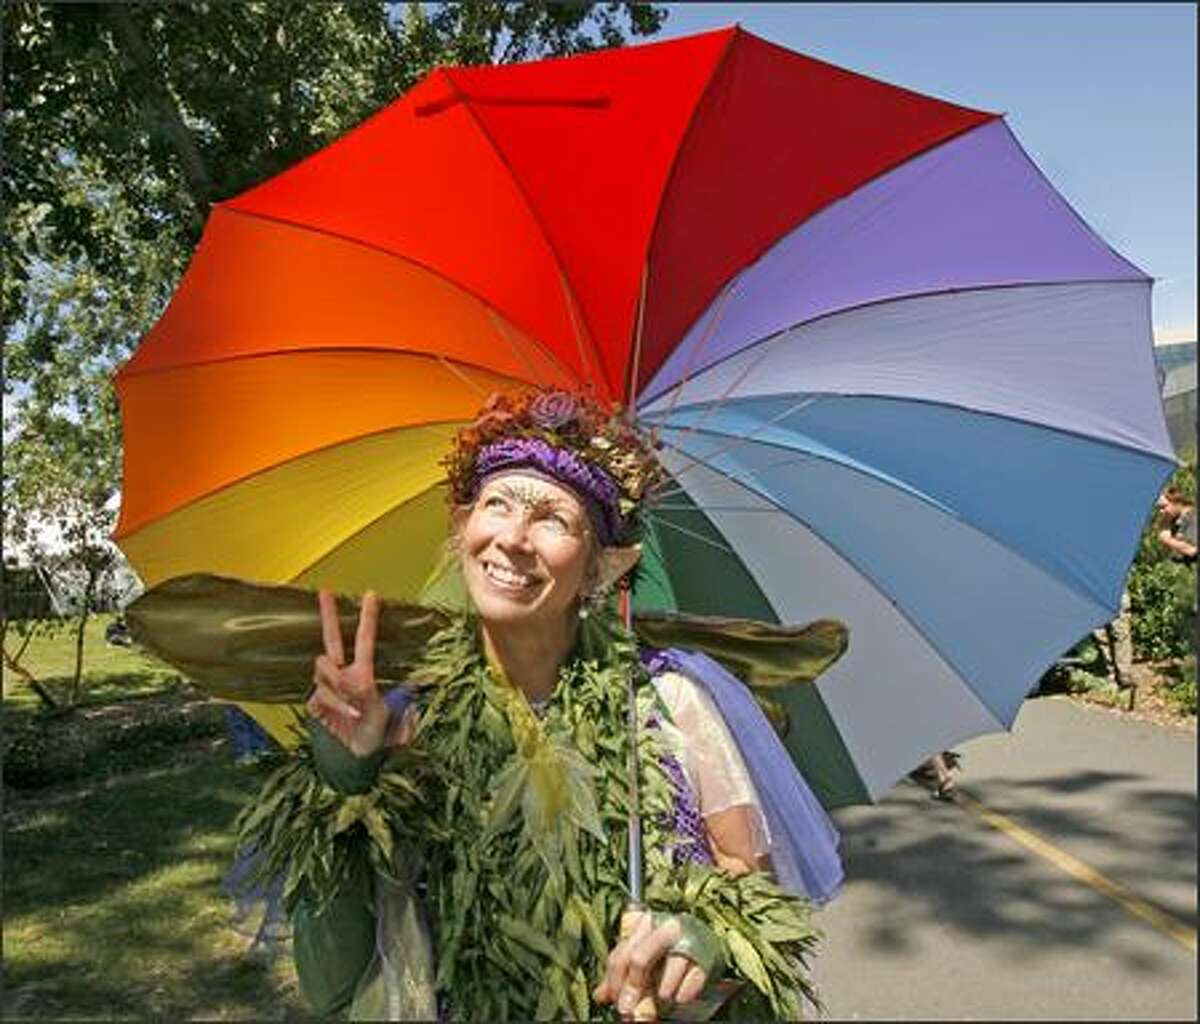 Pakalanalani (Heavenly Plant), as she calls herself, checks out the bright sunshine falling on Hempfest in Myrtle Edwards Park Saturday morning. The forecast called for rain but the day started bright and sunny.